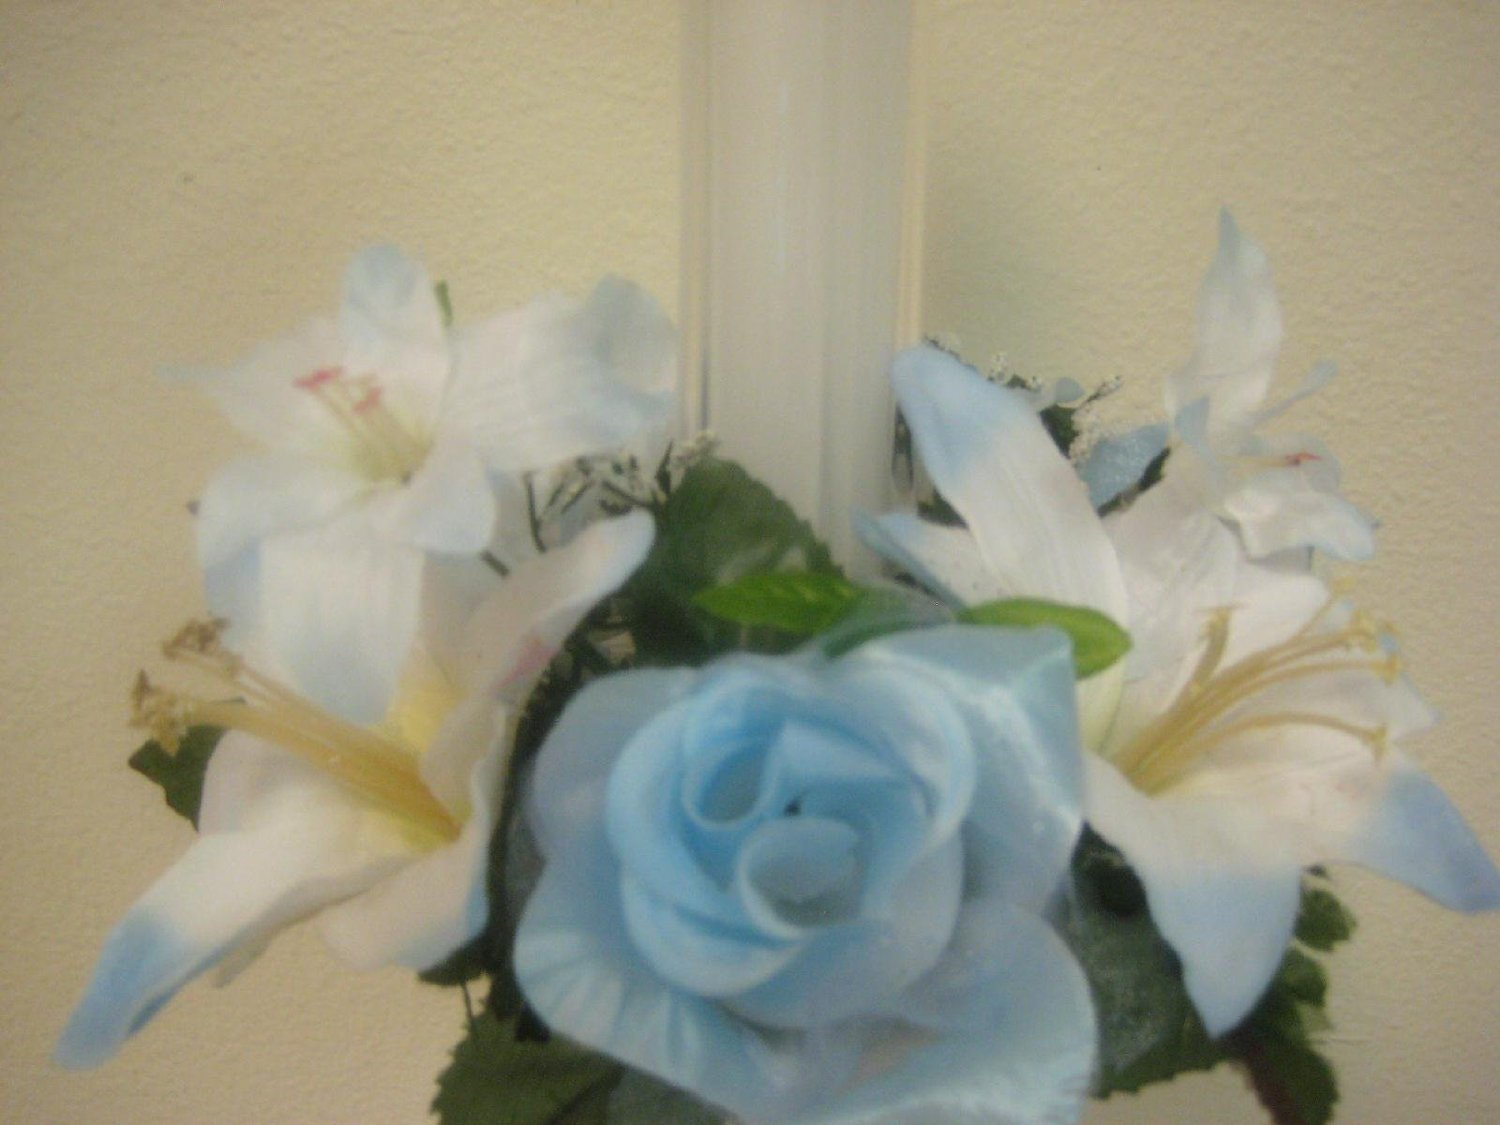 Cheap rose lily flower find rose lily flower deals on line at get quotations 3 lite blue rose lily candle rings center pieces artificial silk flower 3 693lbl izmirmasajfo